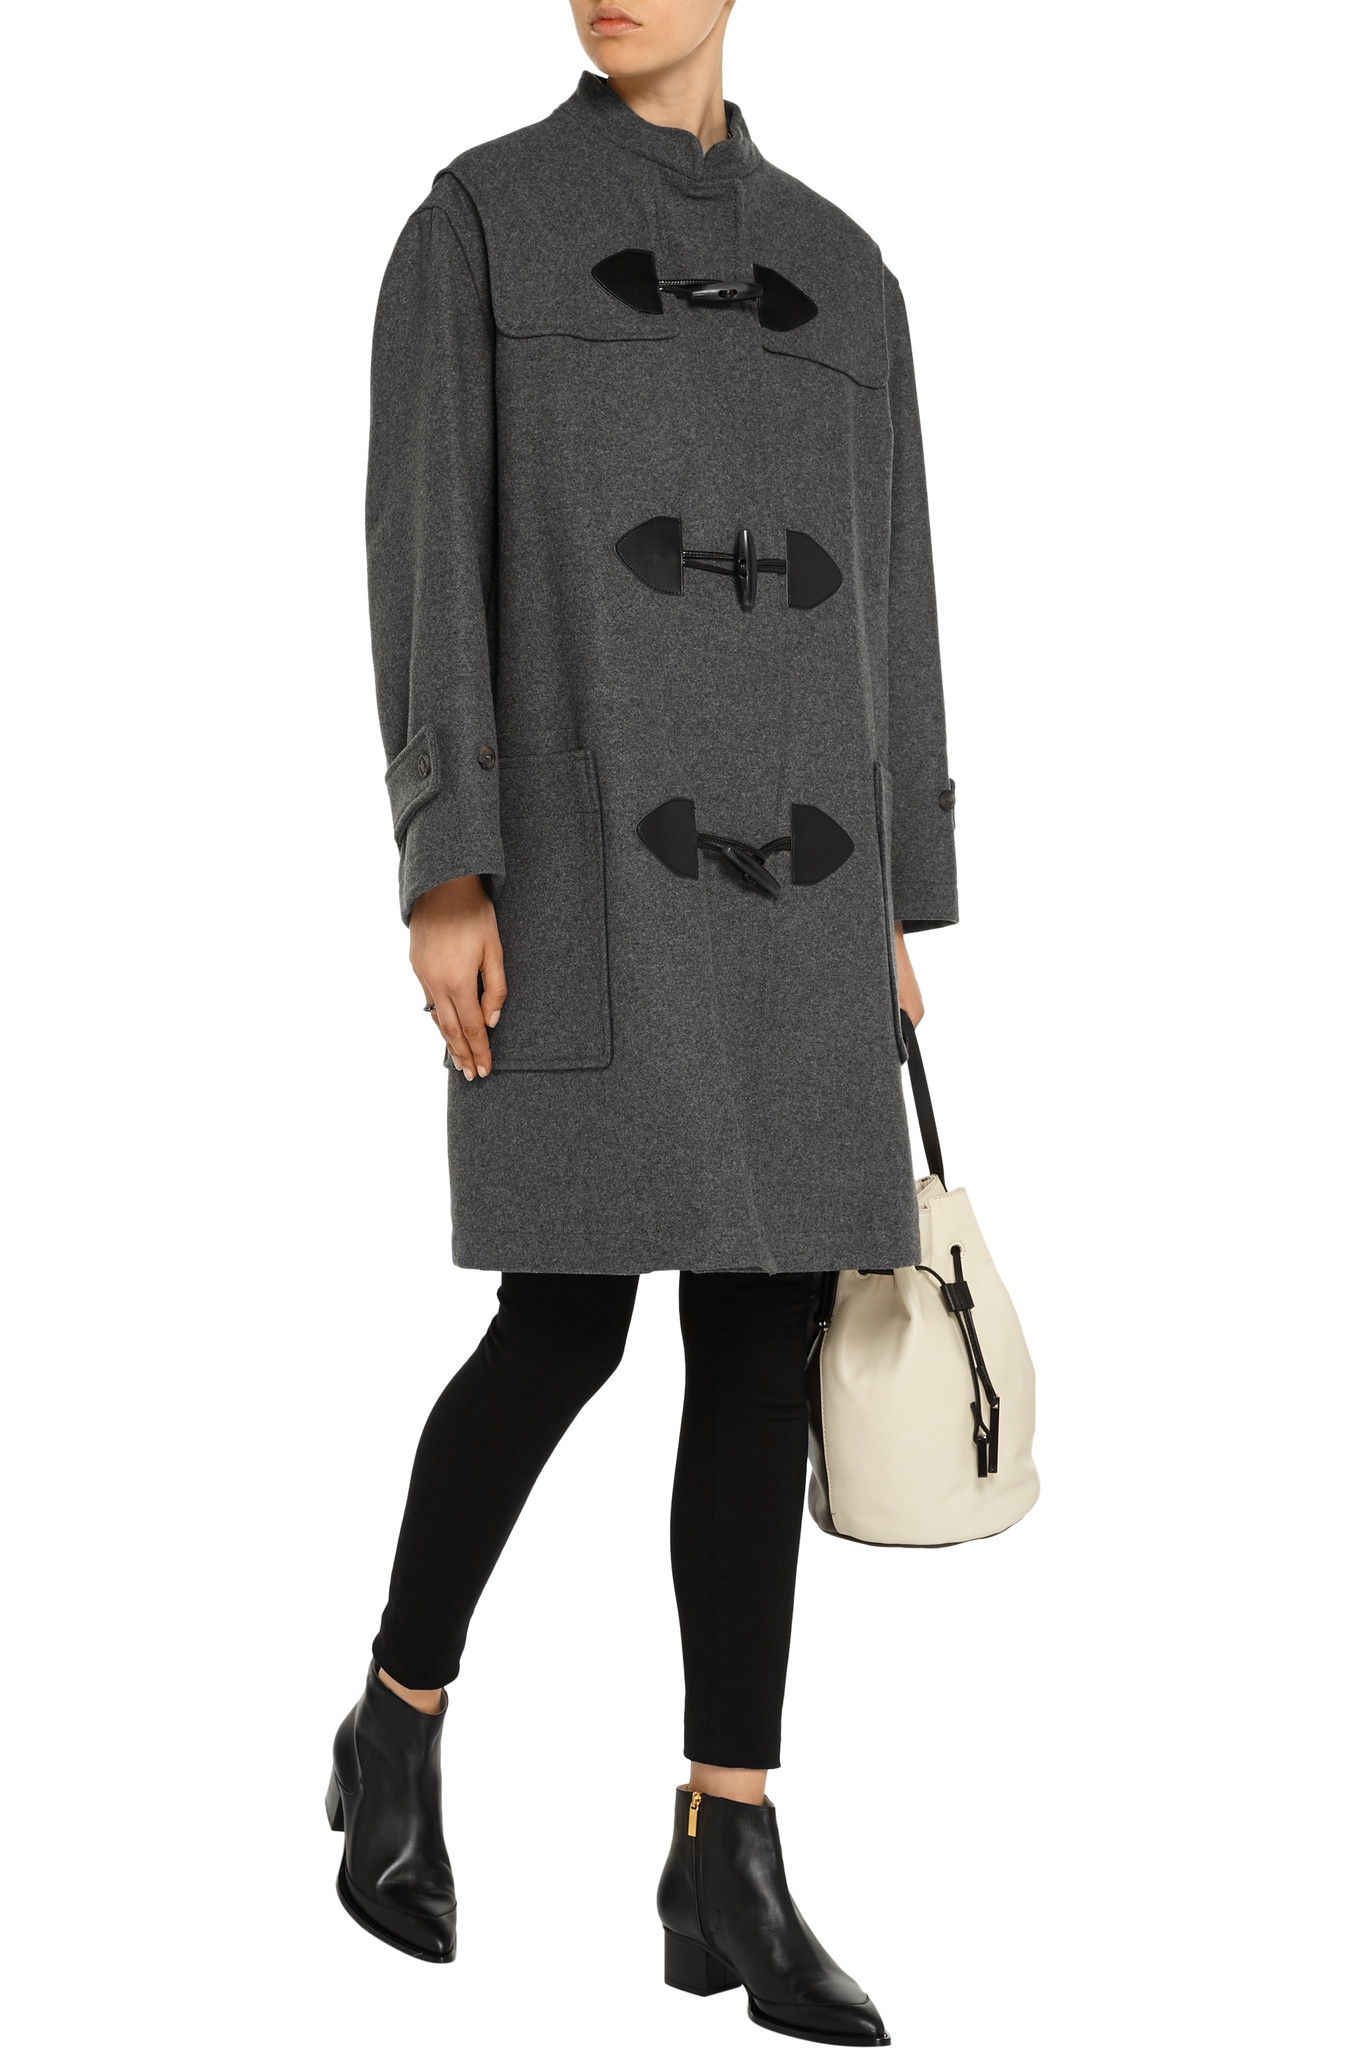 See by chloé Wool-blend Coat in Gray